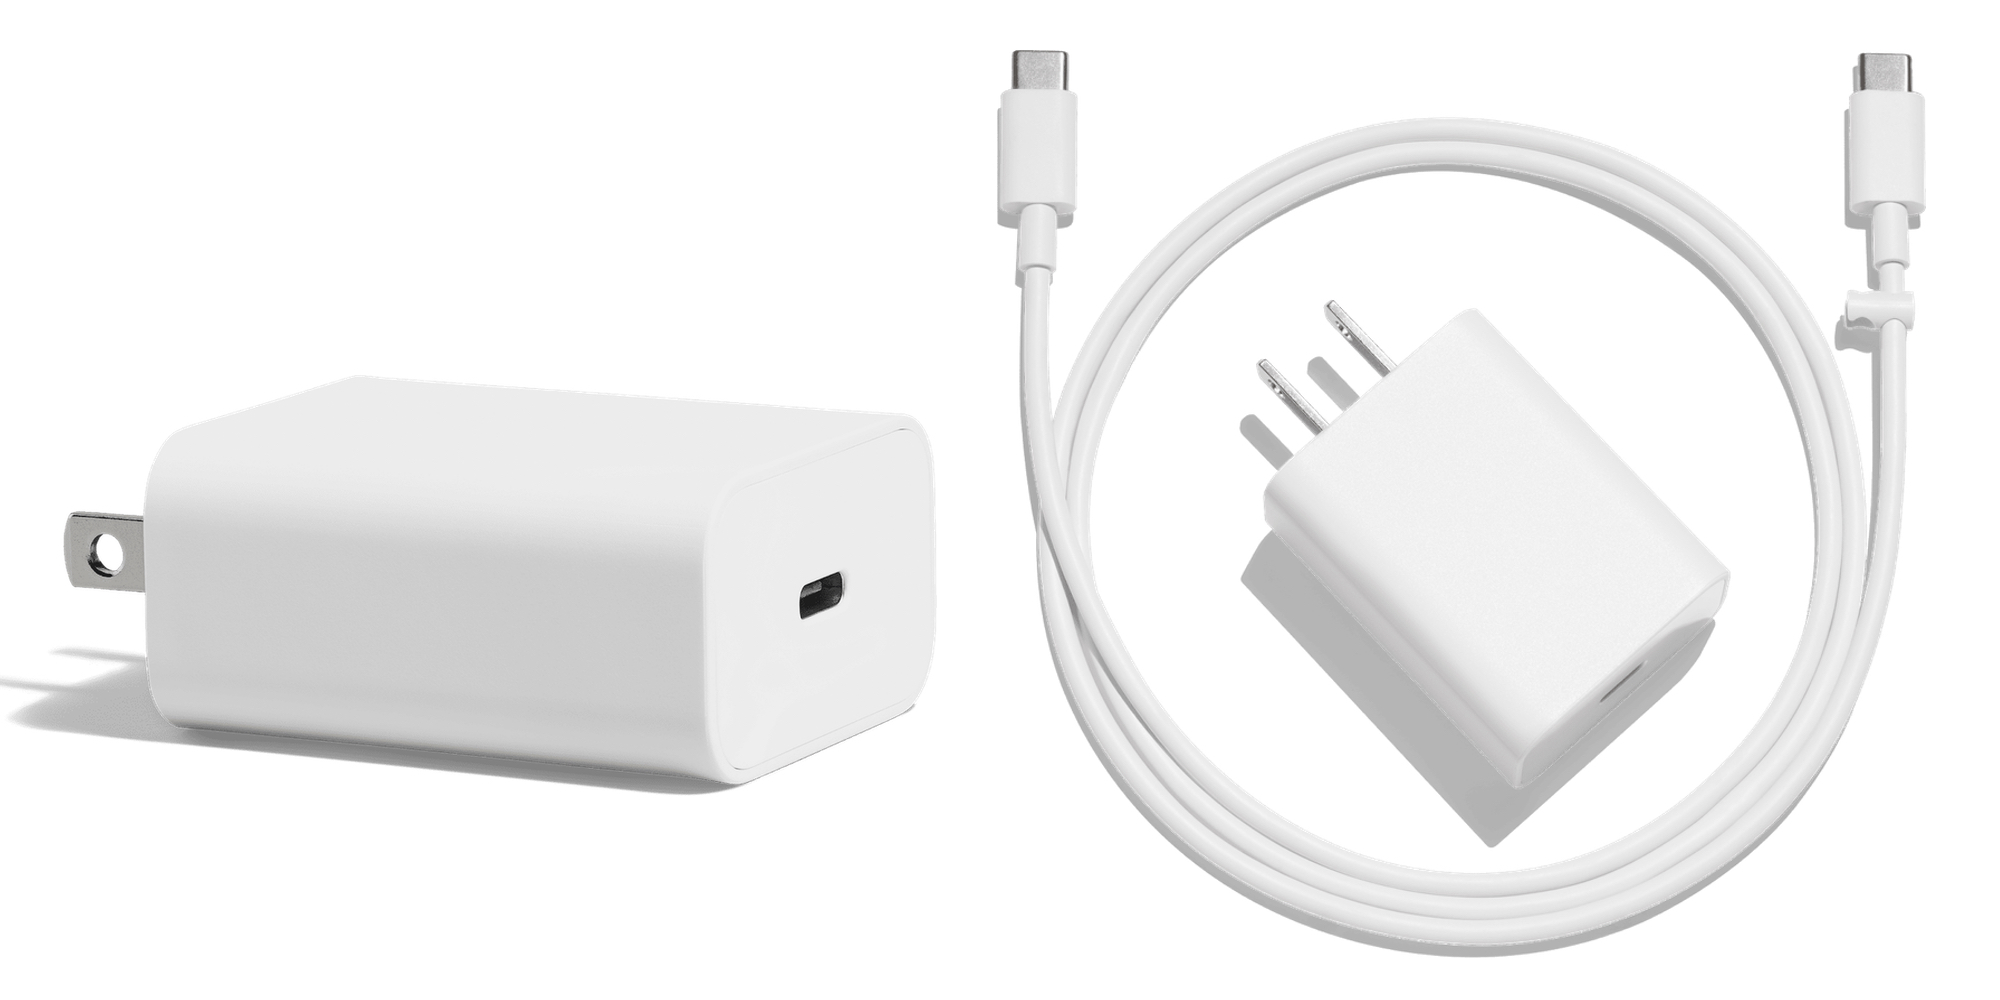 Smartphone Accessories: Google Pixel 18W USB-C Wall Charger $14.50 shipped, more